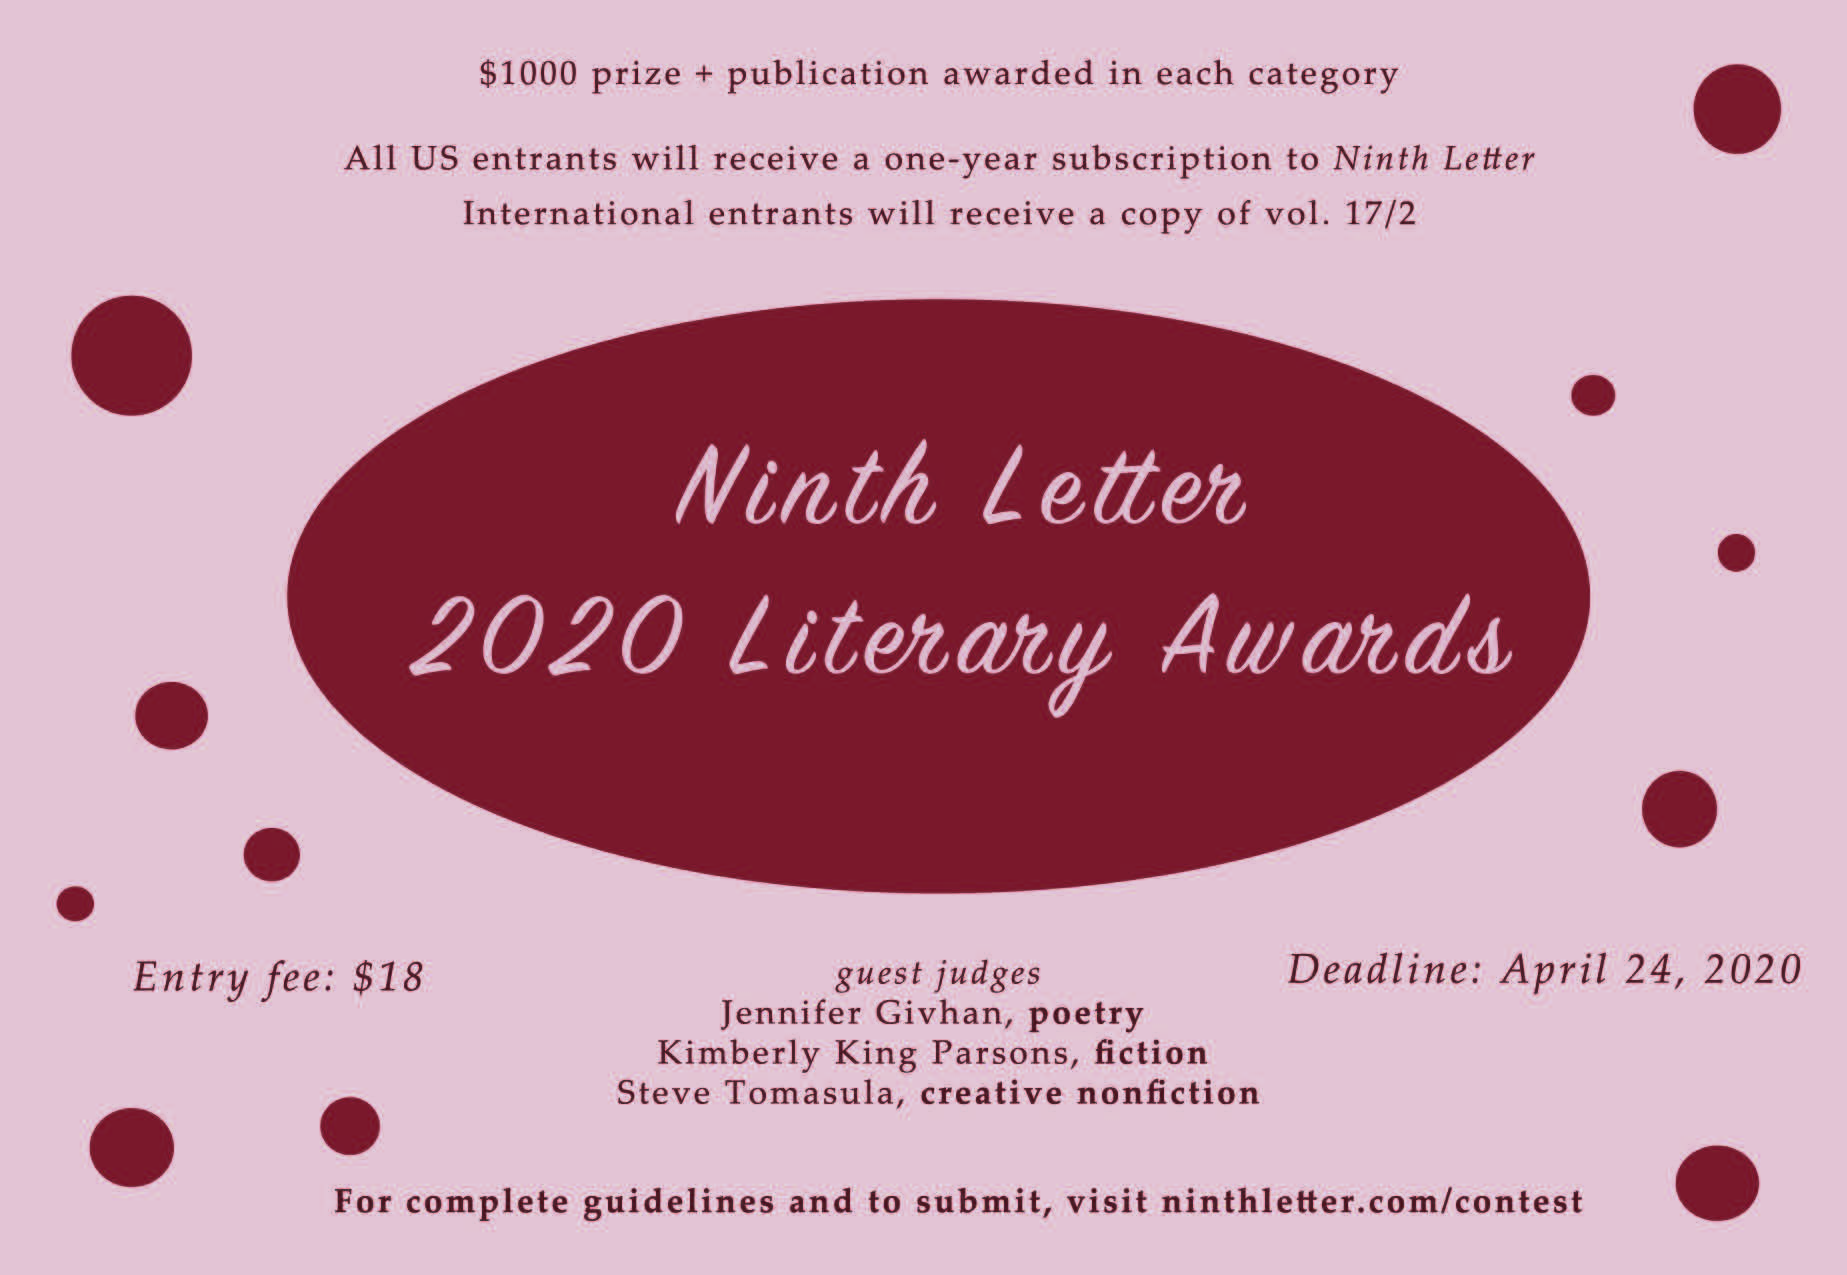 2020 Literary awards announcement